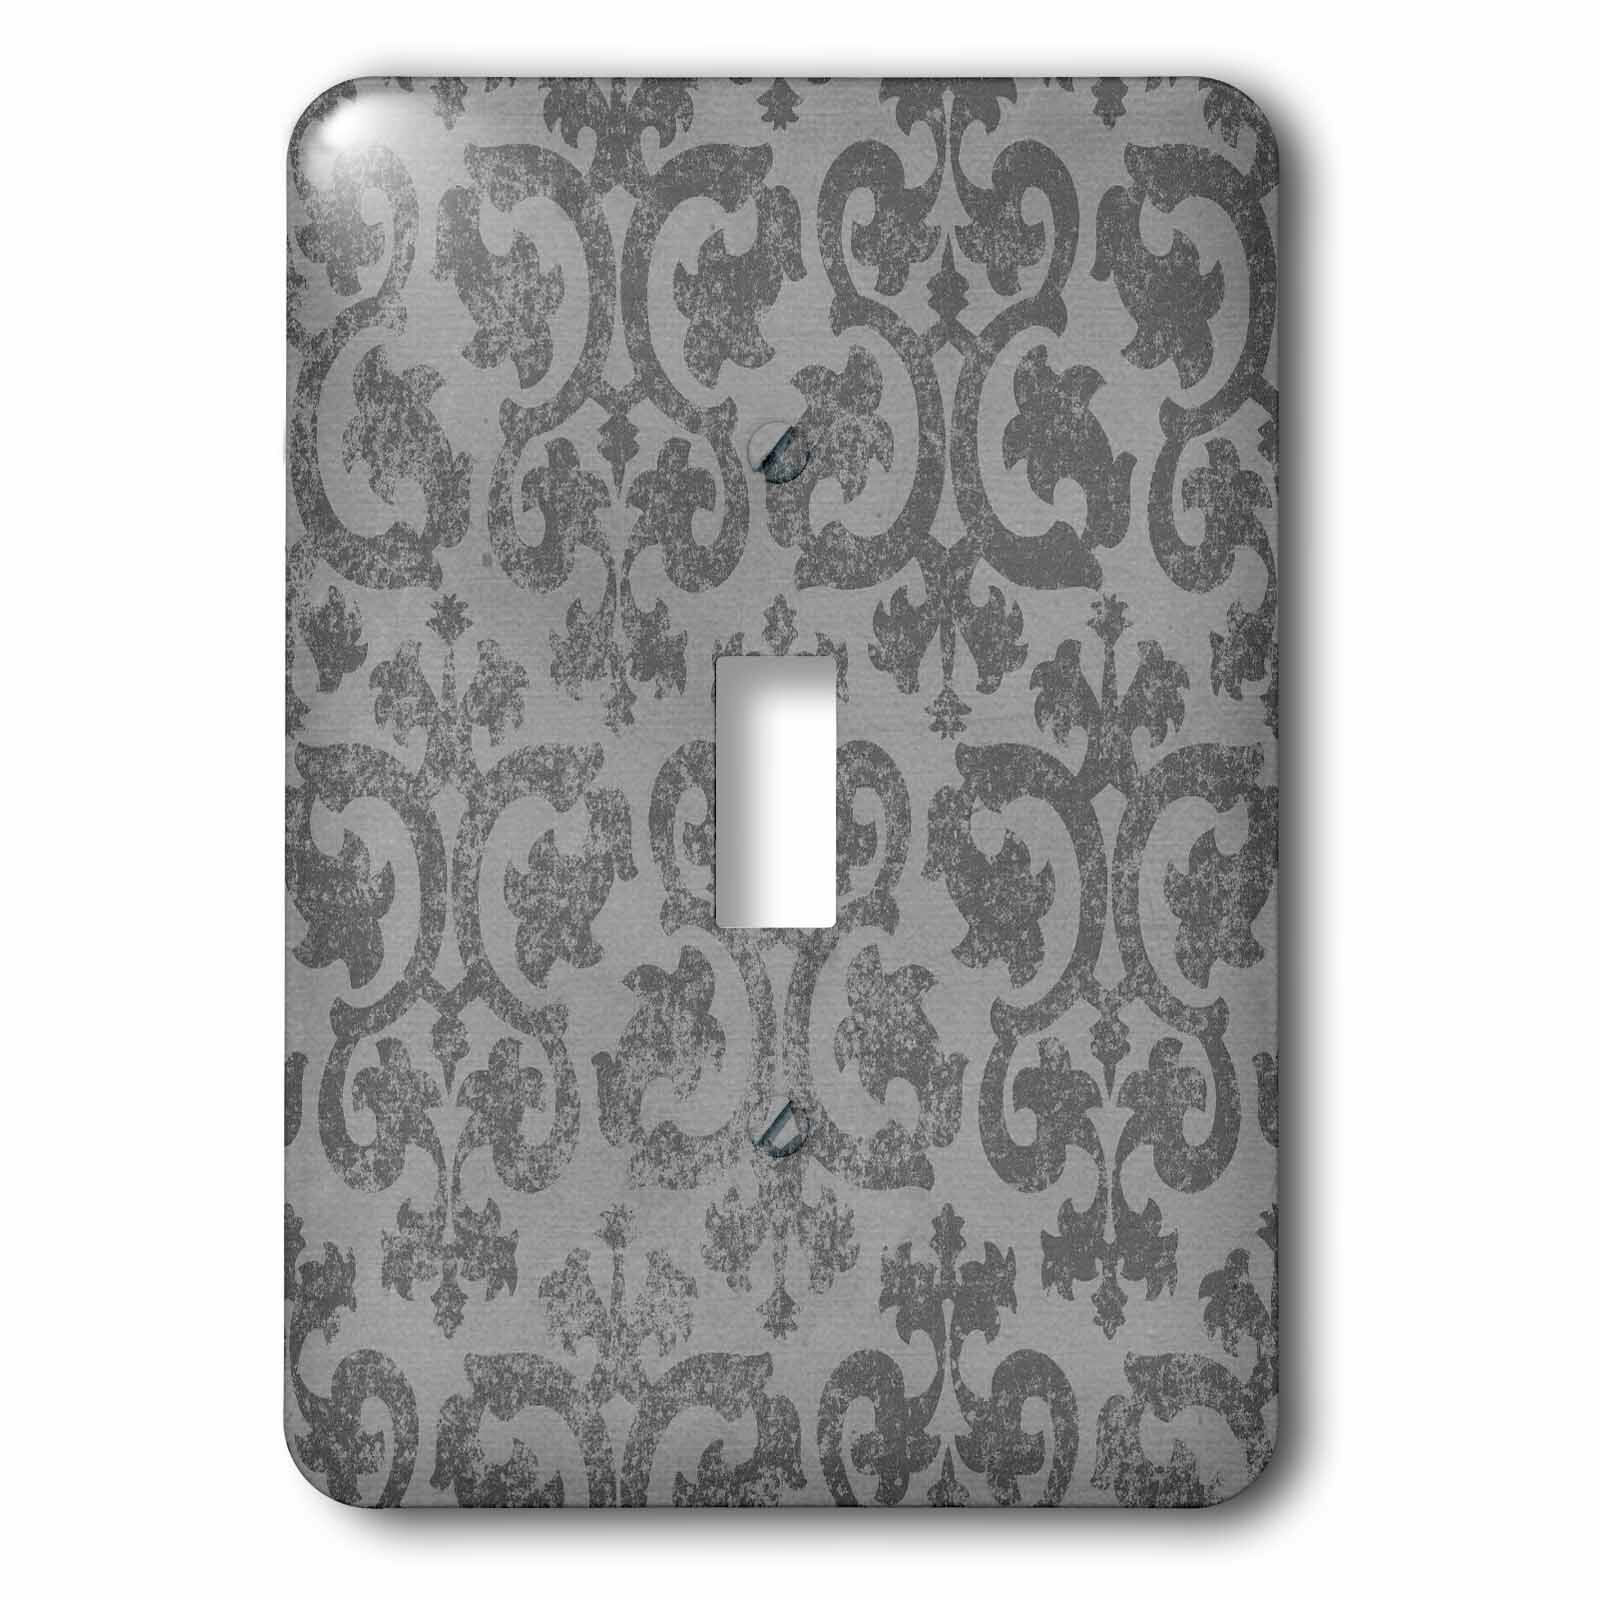 3drose Vintage Grunge Damask 1 Gang Toggle Light Switch Wall Plate Wayfair